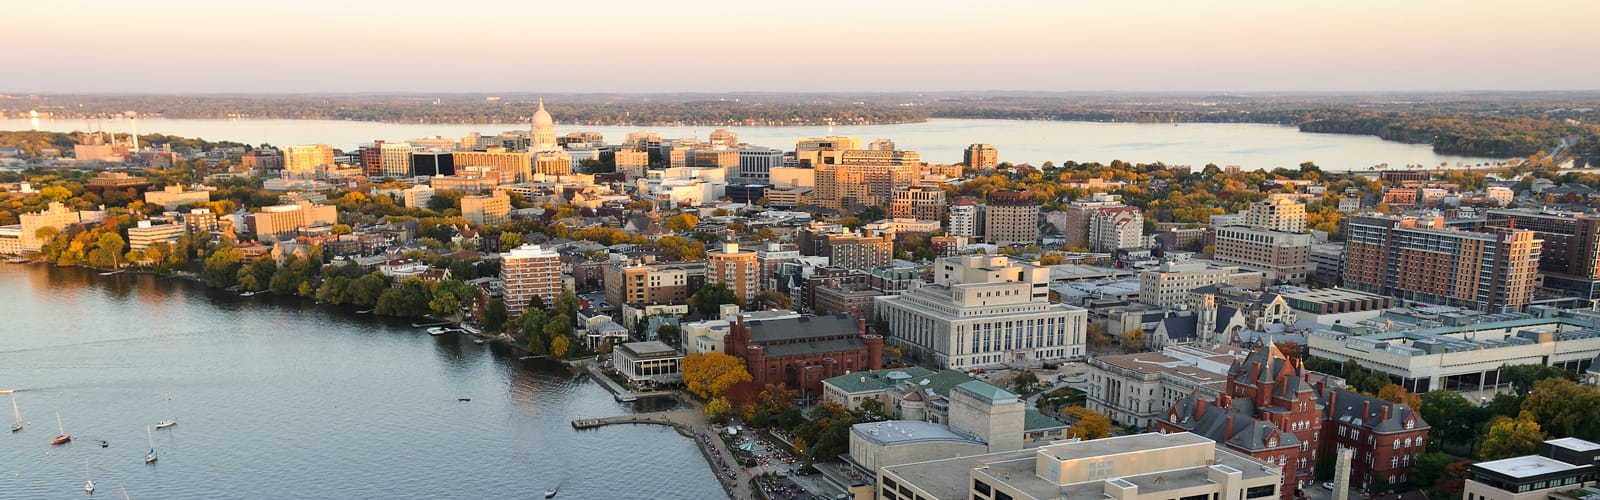 Image result for university of madison wisconsin